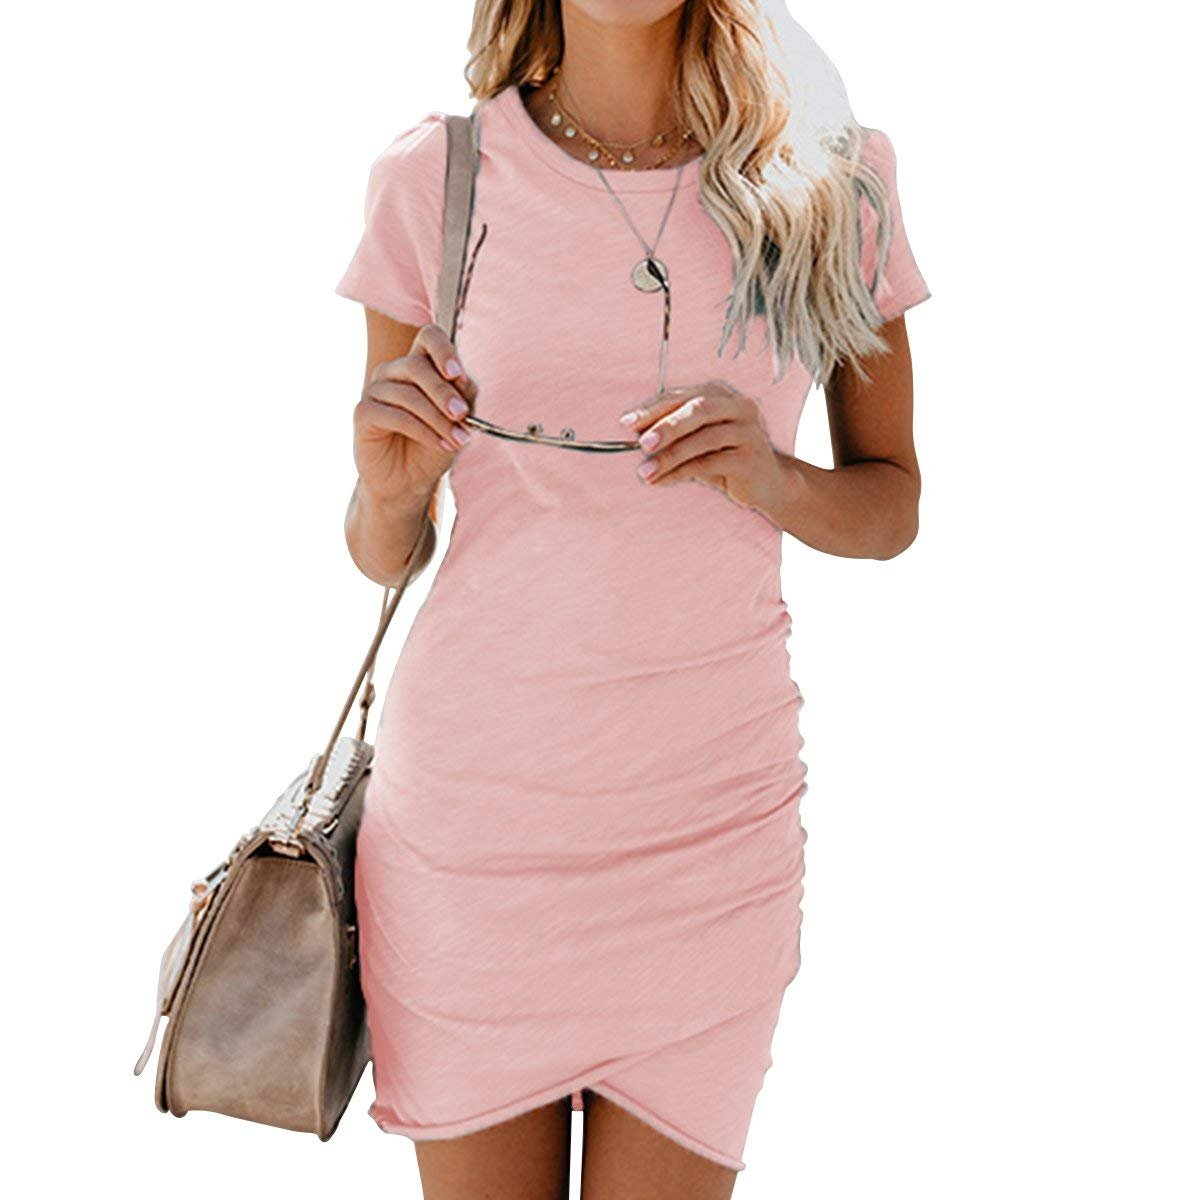 Women Short Sleeve Irregular Hem Bodycon Mini Solid Summer Casual Dresses Pink M